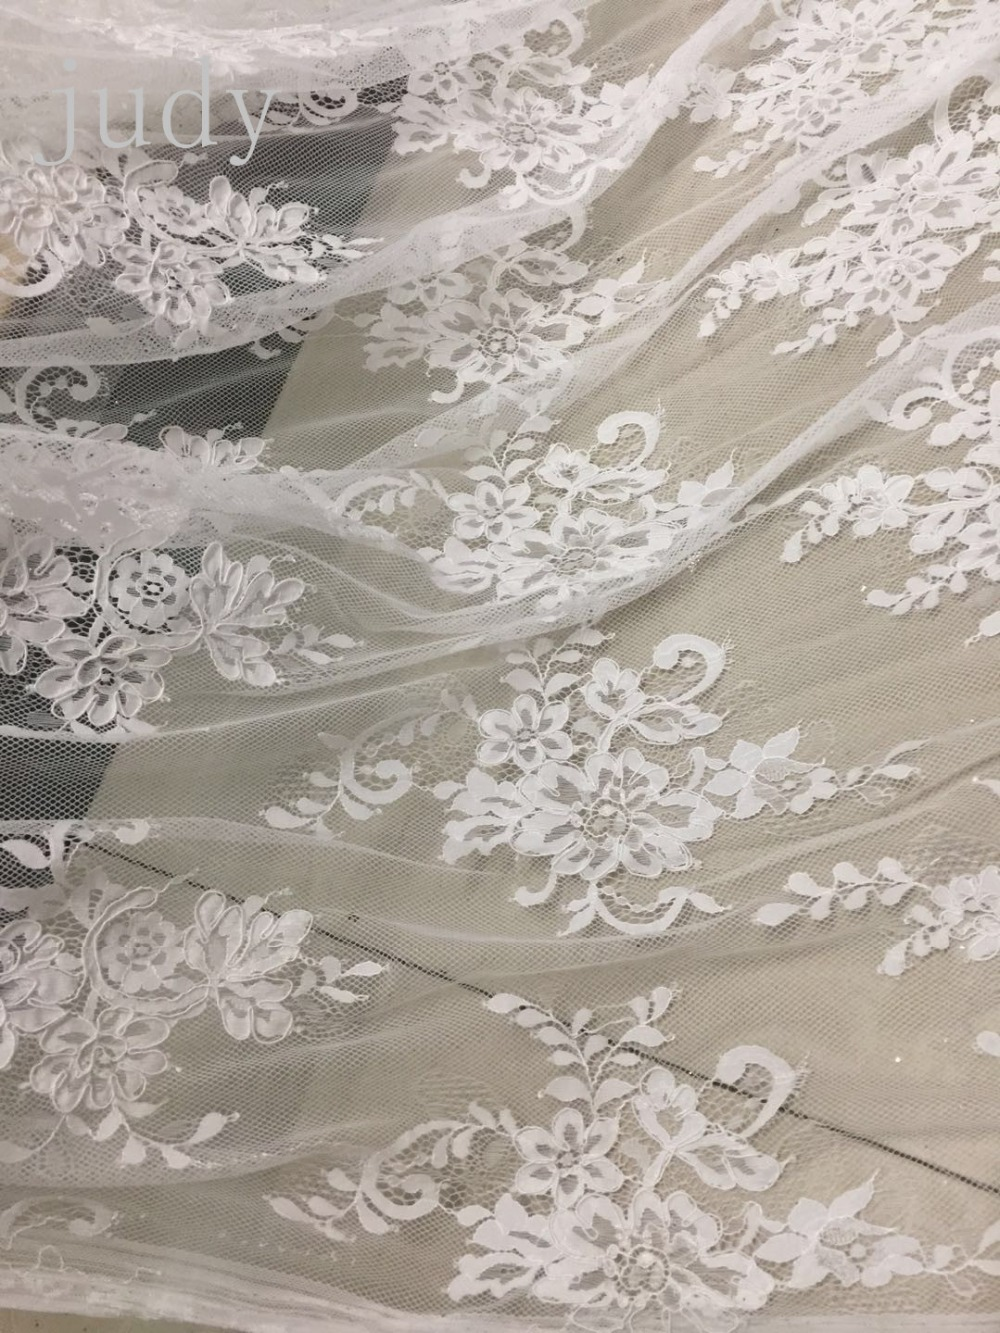 New pattern  1pieces CH06# White lace French dress cord for bridal wedding dress/sawing Free shippingNew pattern  1pieces CH06# White lace French dress cord for bridal wedding dress/sawing Free shipping